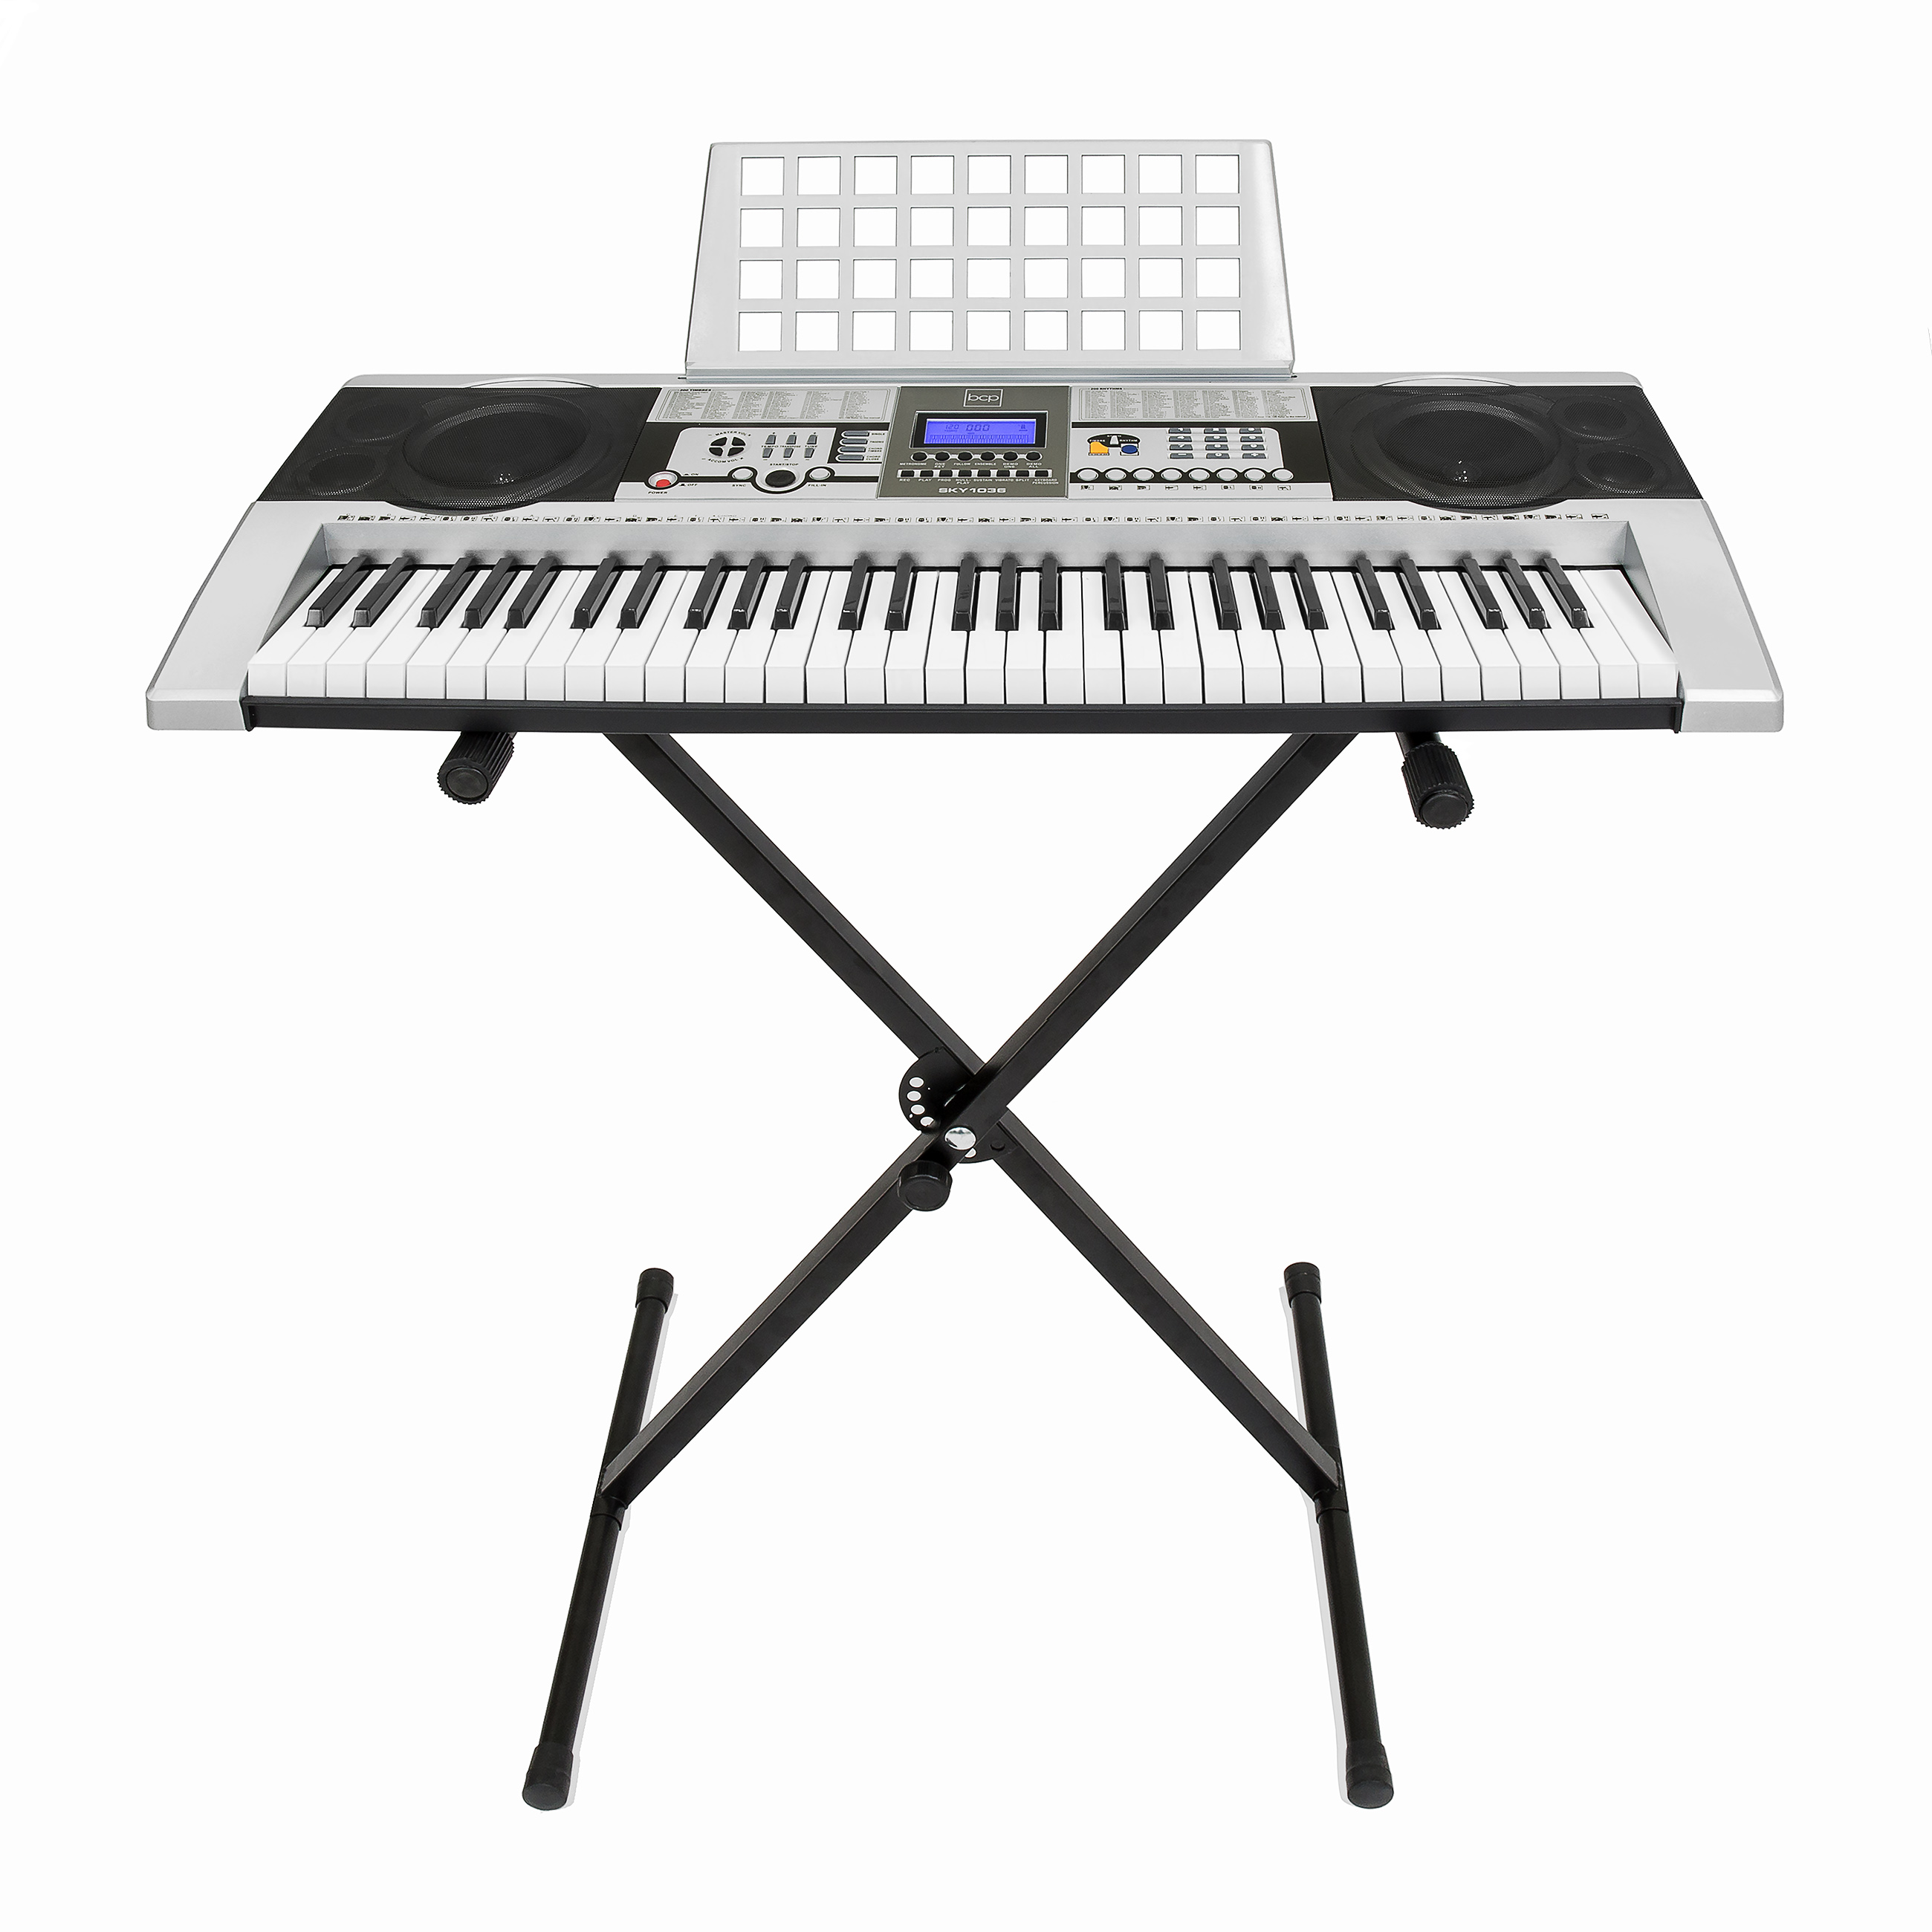 Electronic Piano Keyboard 61 Key Music Key Board Piano With X Stand Heavy Duty by SKY